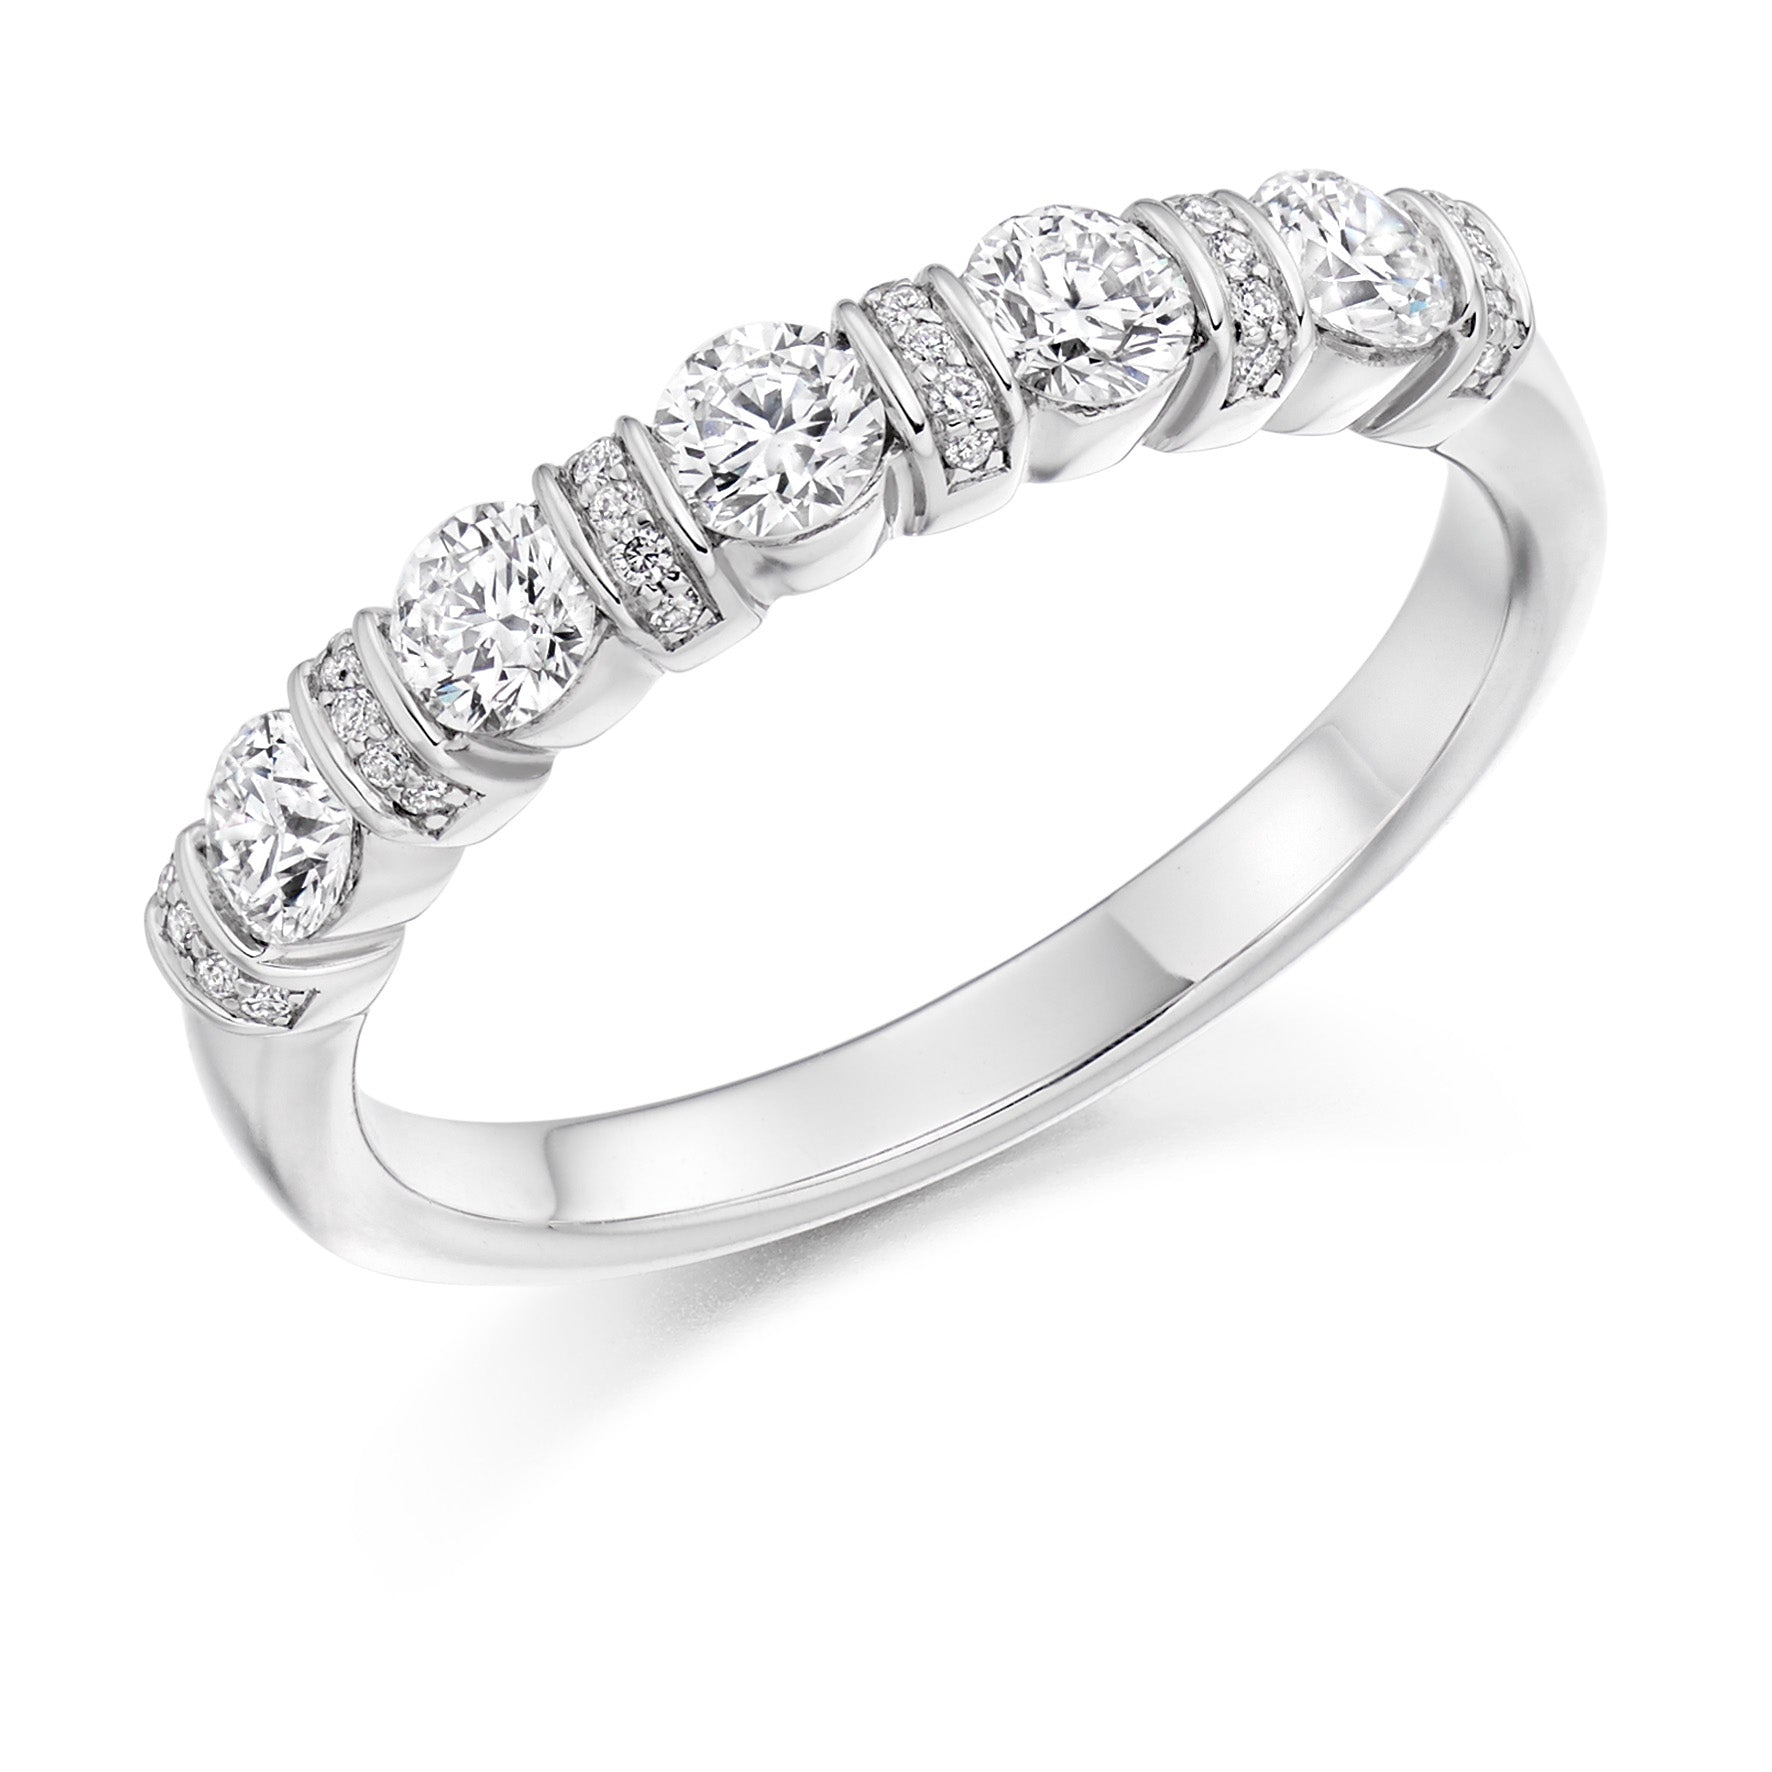 18ct White Gold 0.6ct Round Brilliant Cut Diamonds Wedding Ring